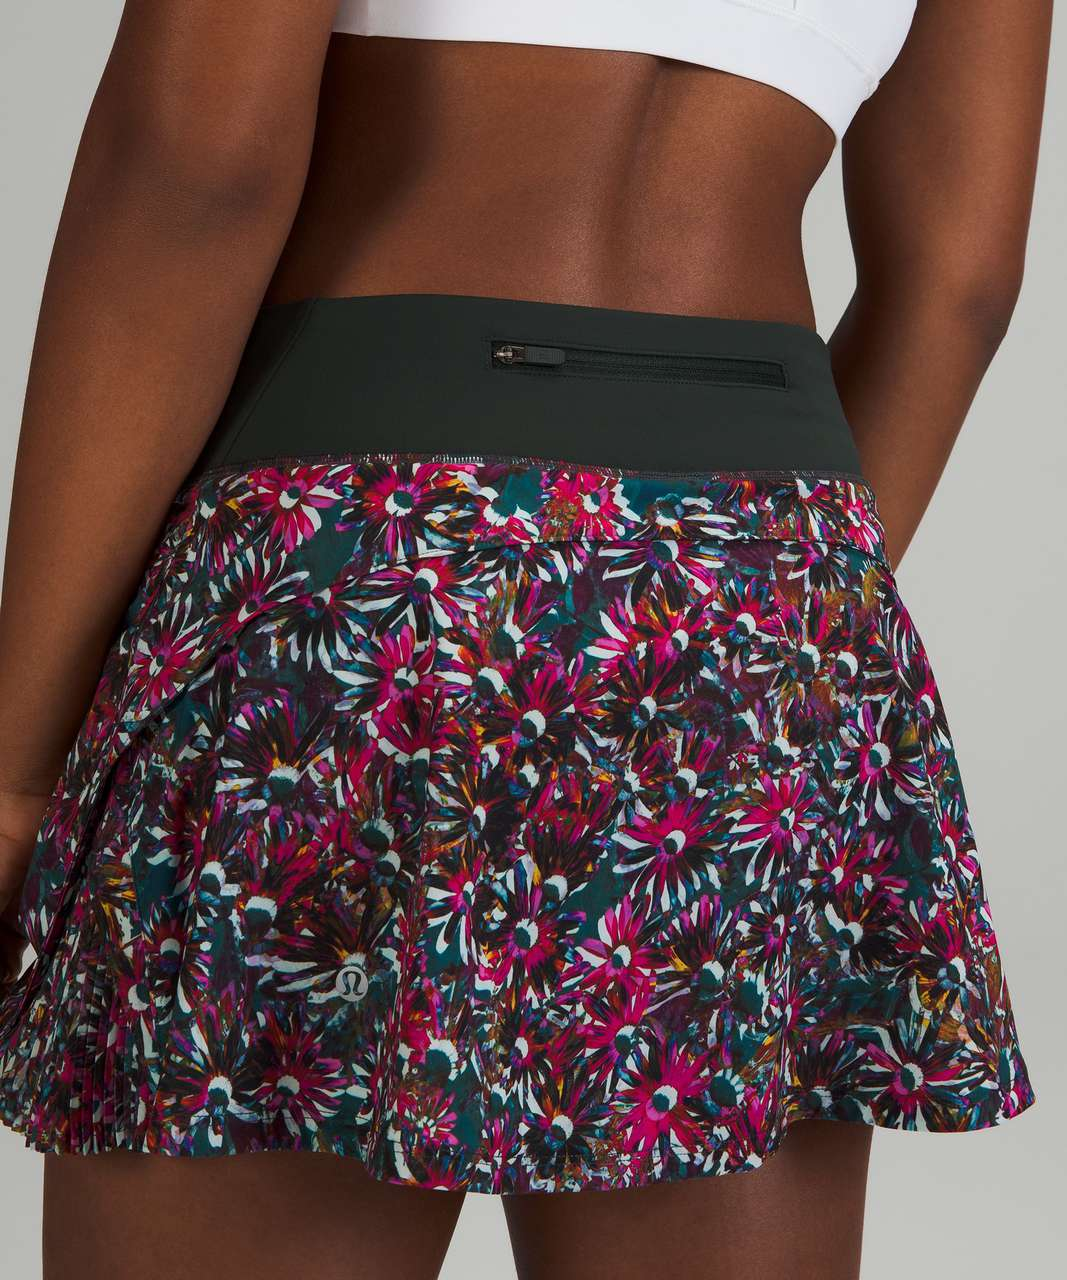 Lululemon Play Off the Pleats Mid-Rise Skirt - Floral Electric Multi / Rainforest Green